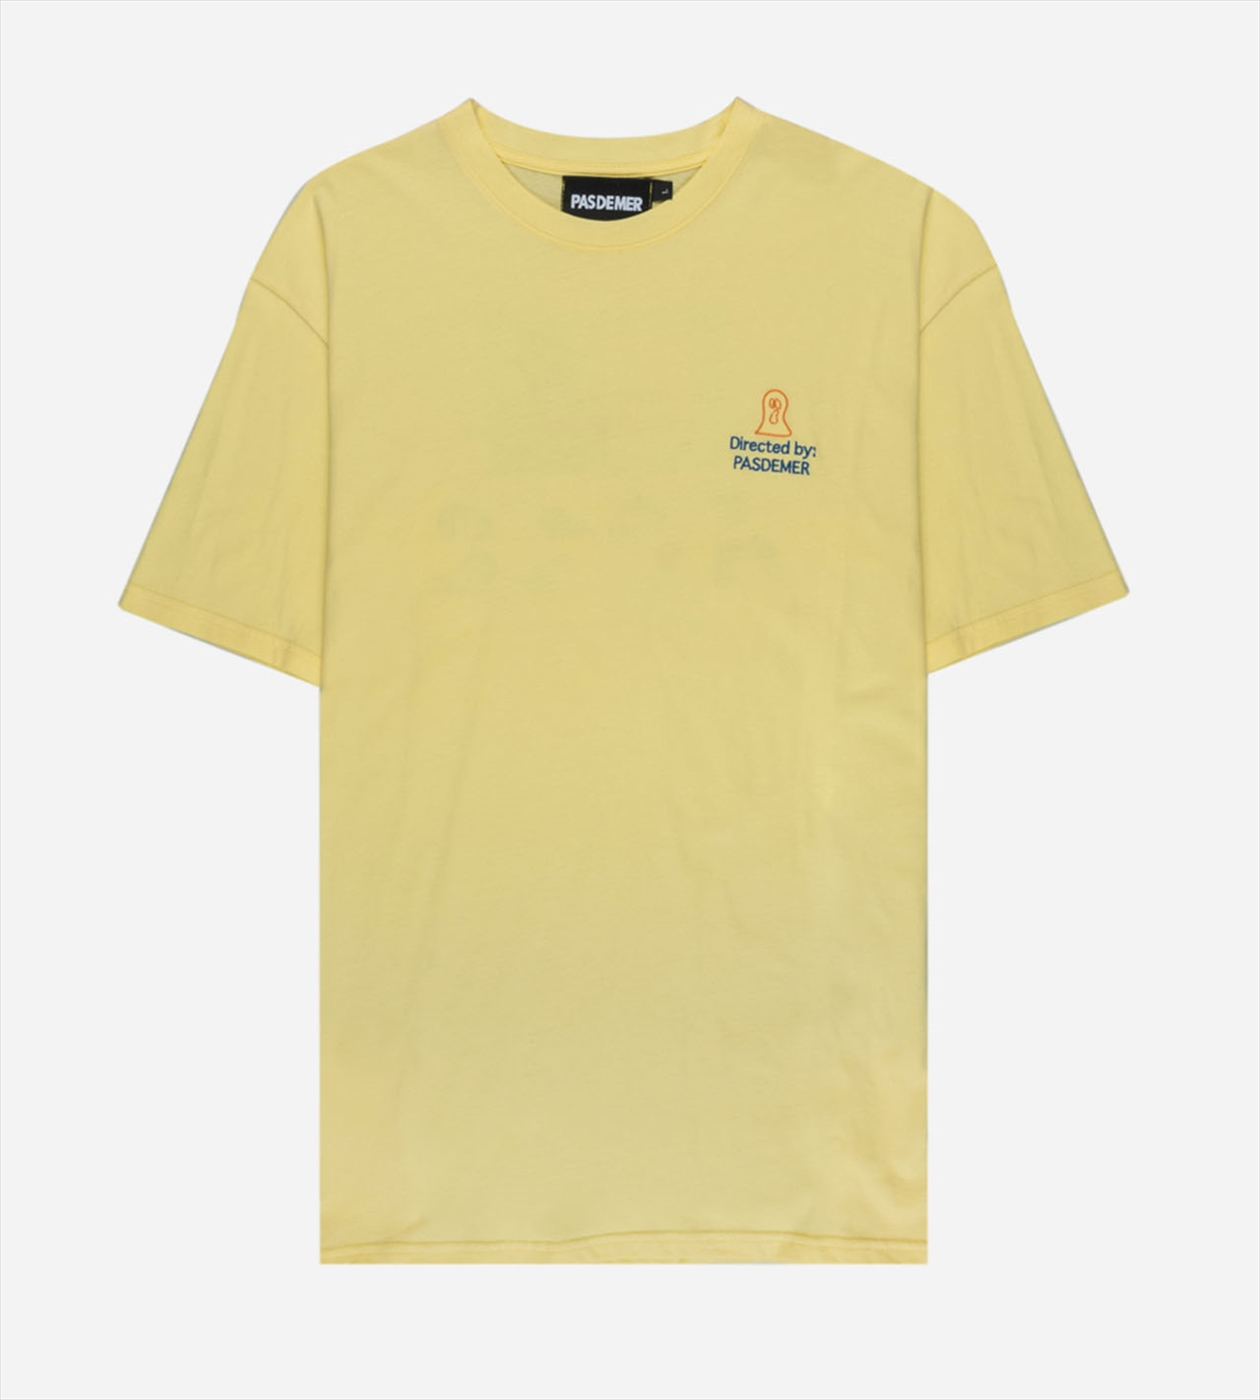 【PAS DE MER/パドゥメ】CINEMA T-SHIRT  Tシャツ / LIGHT YELLOW